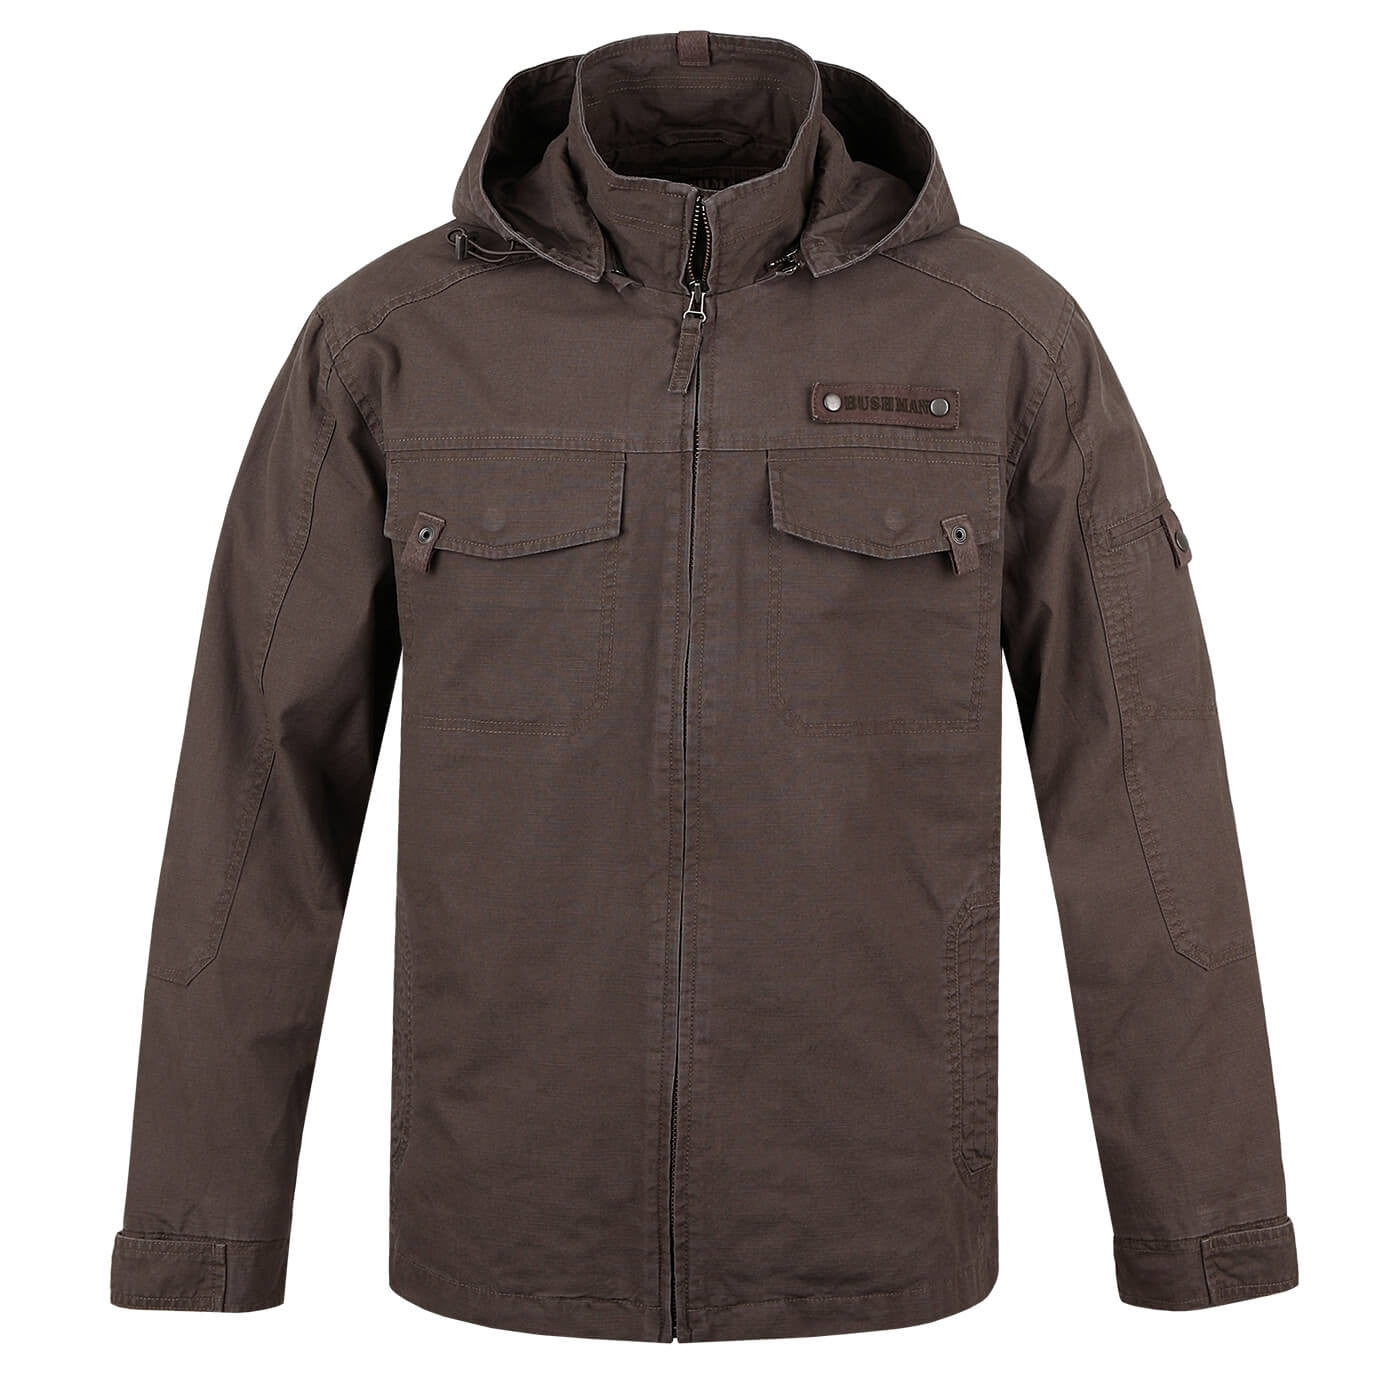 BUSHMANSHOP ONTARIO MEN'S BROWN HEAVY DUTY COTTON CANVAS HOODED ZIP-UP JACKET